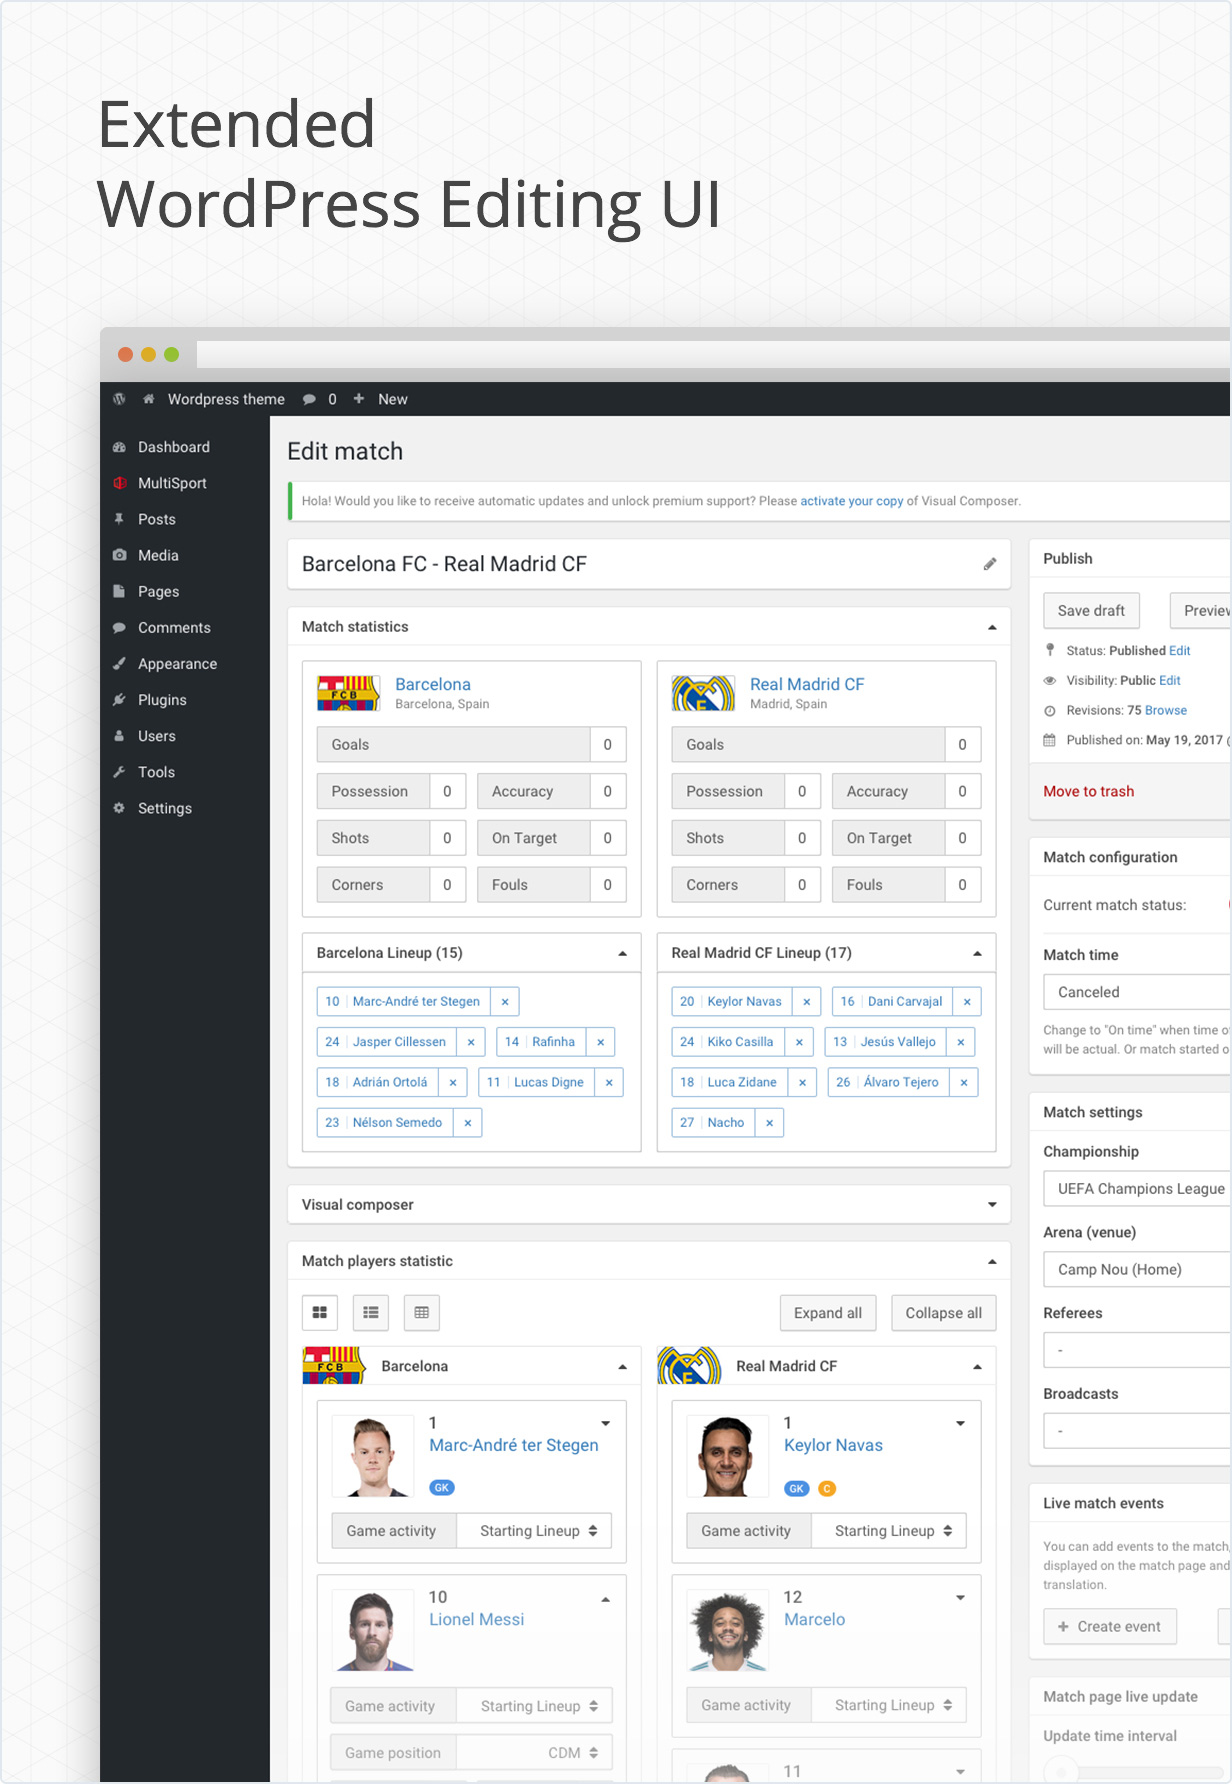 Extended wordpress admin panel UI